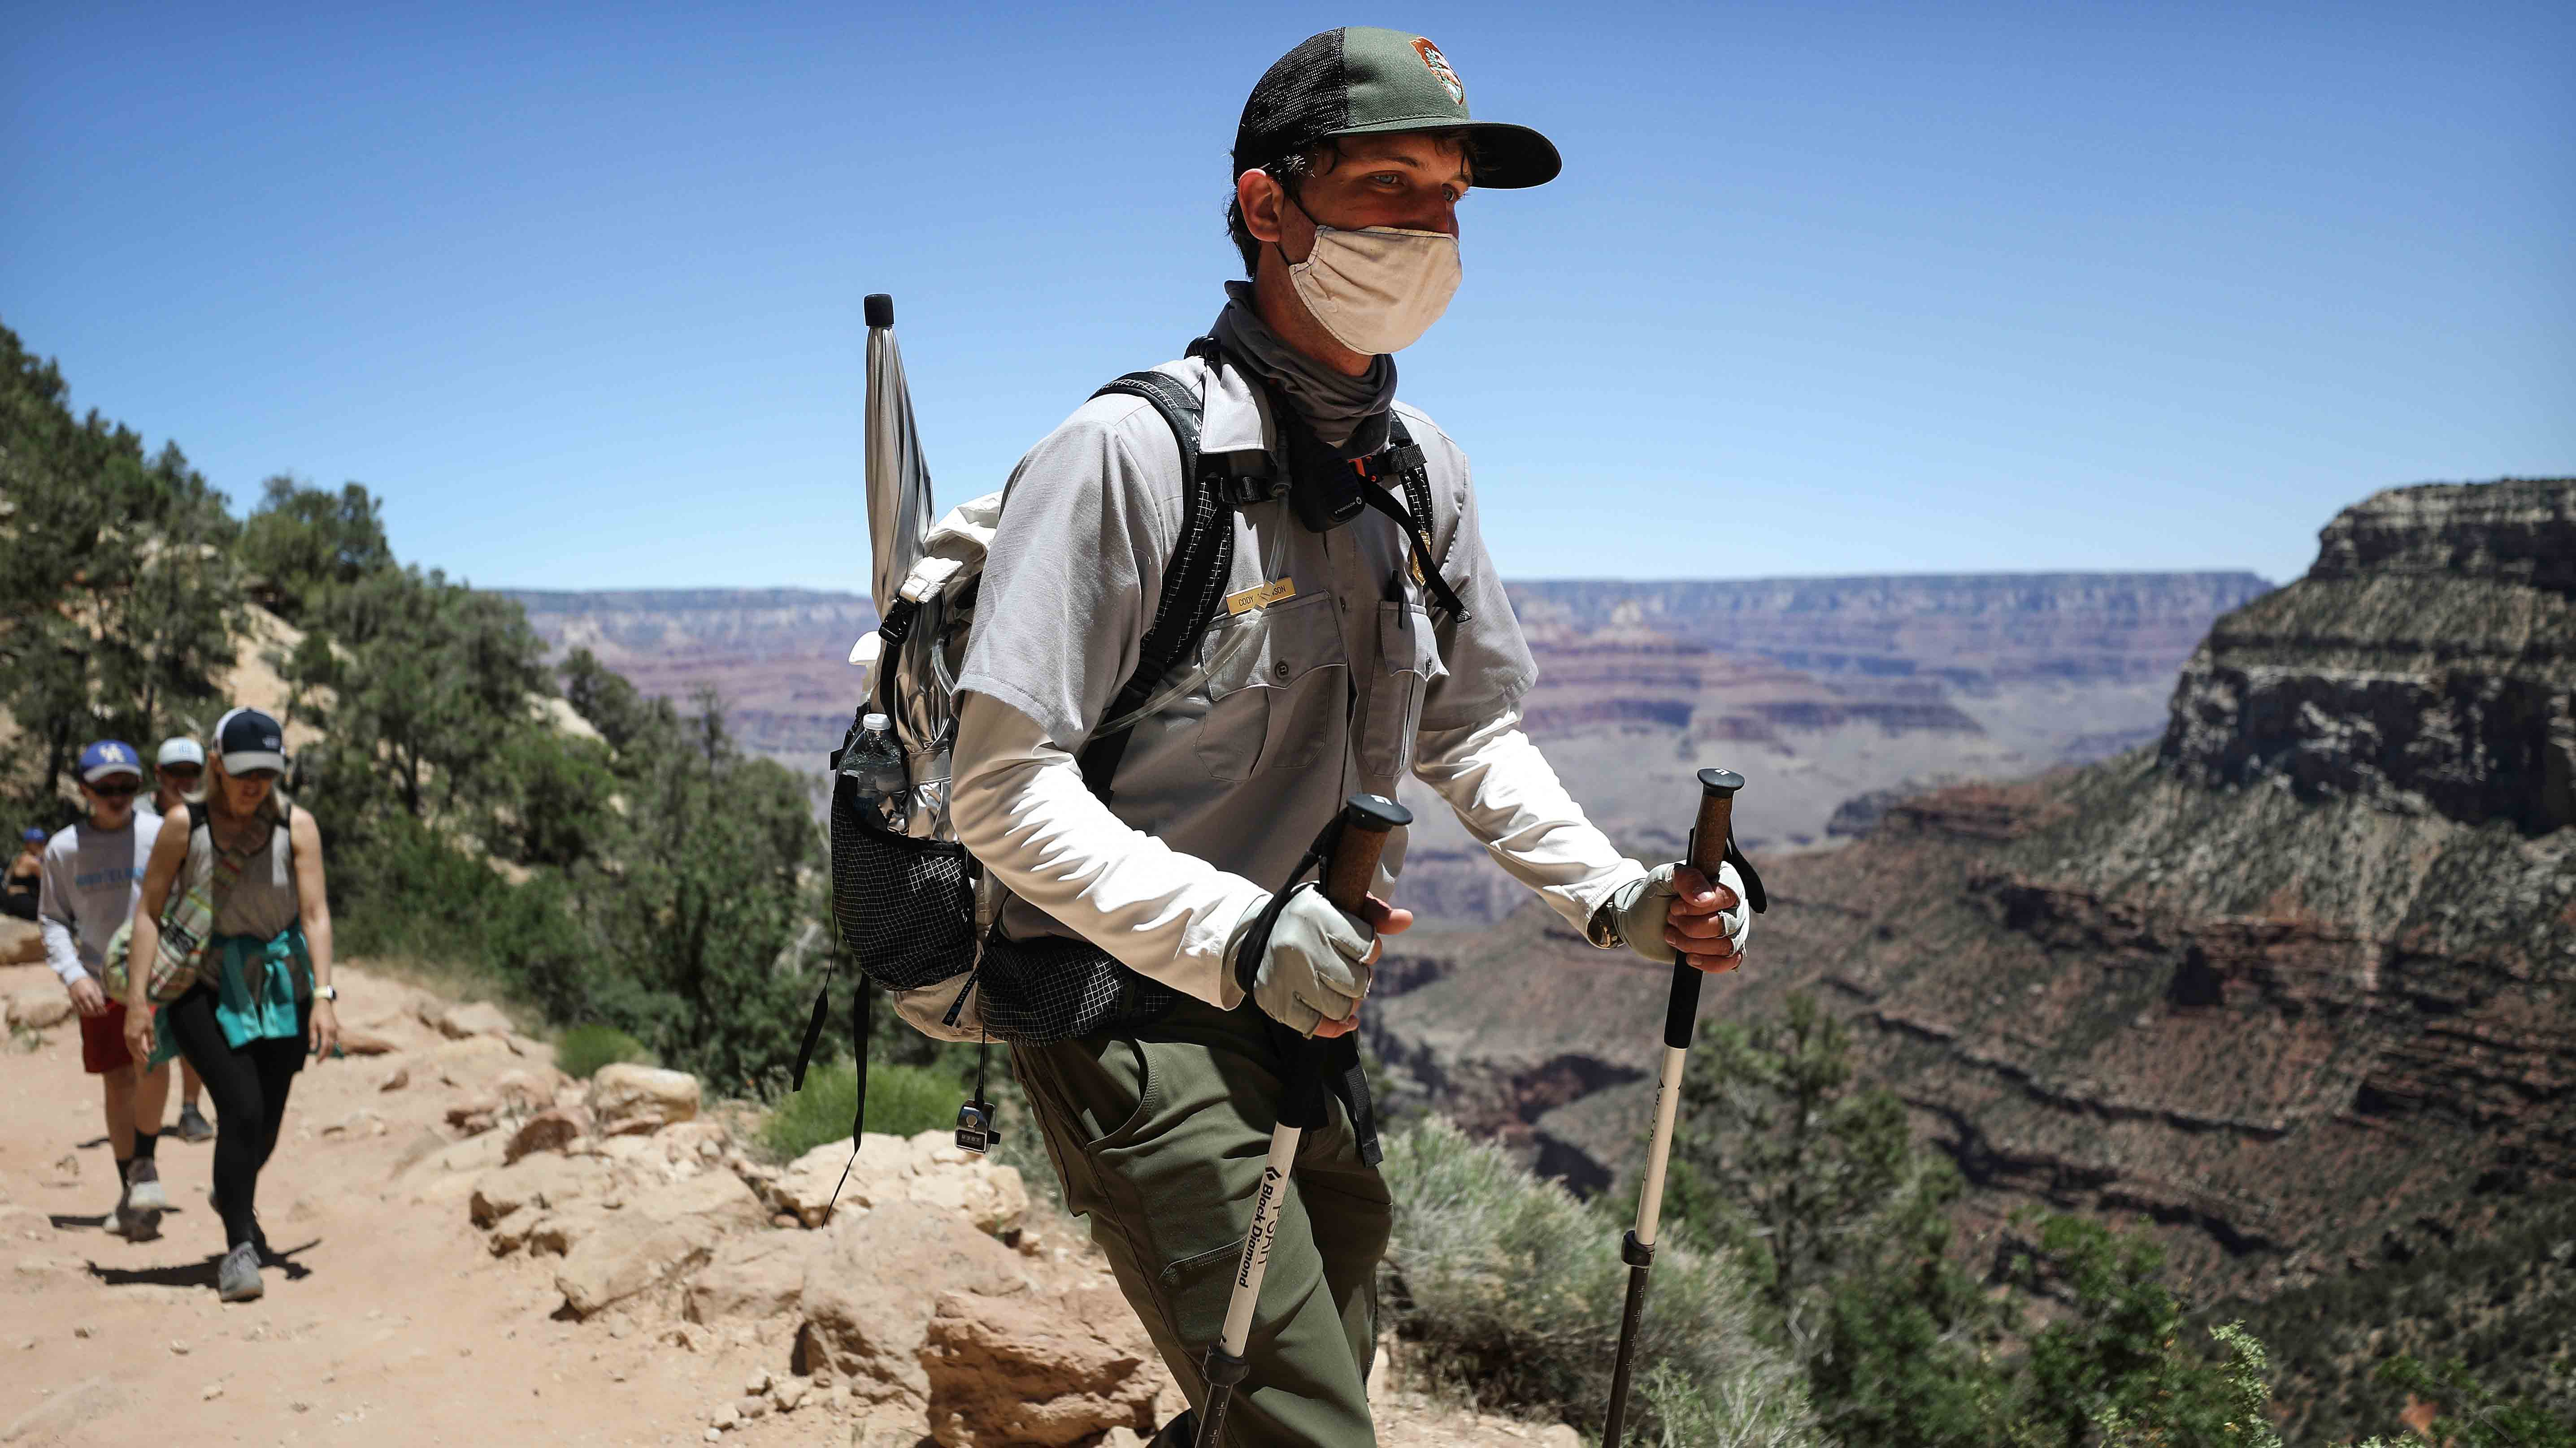 Planning a National Park Visit Amid the Coronavirus Pandemic? Here's What You Need to Know